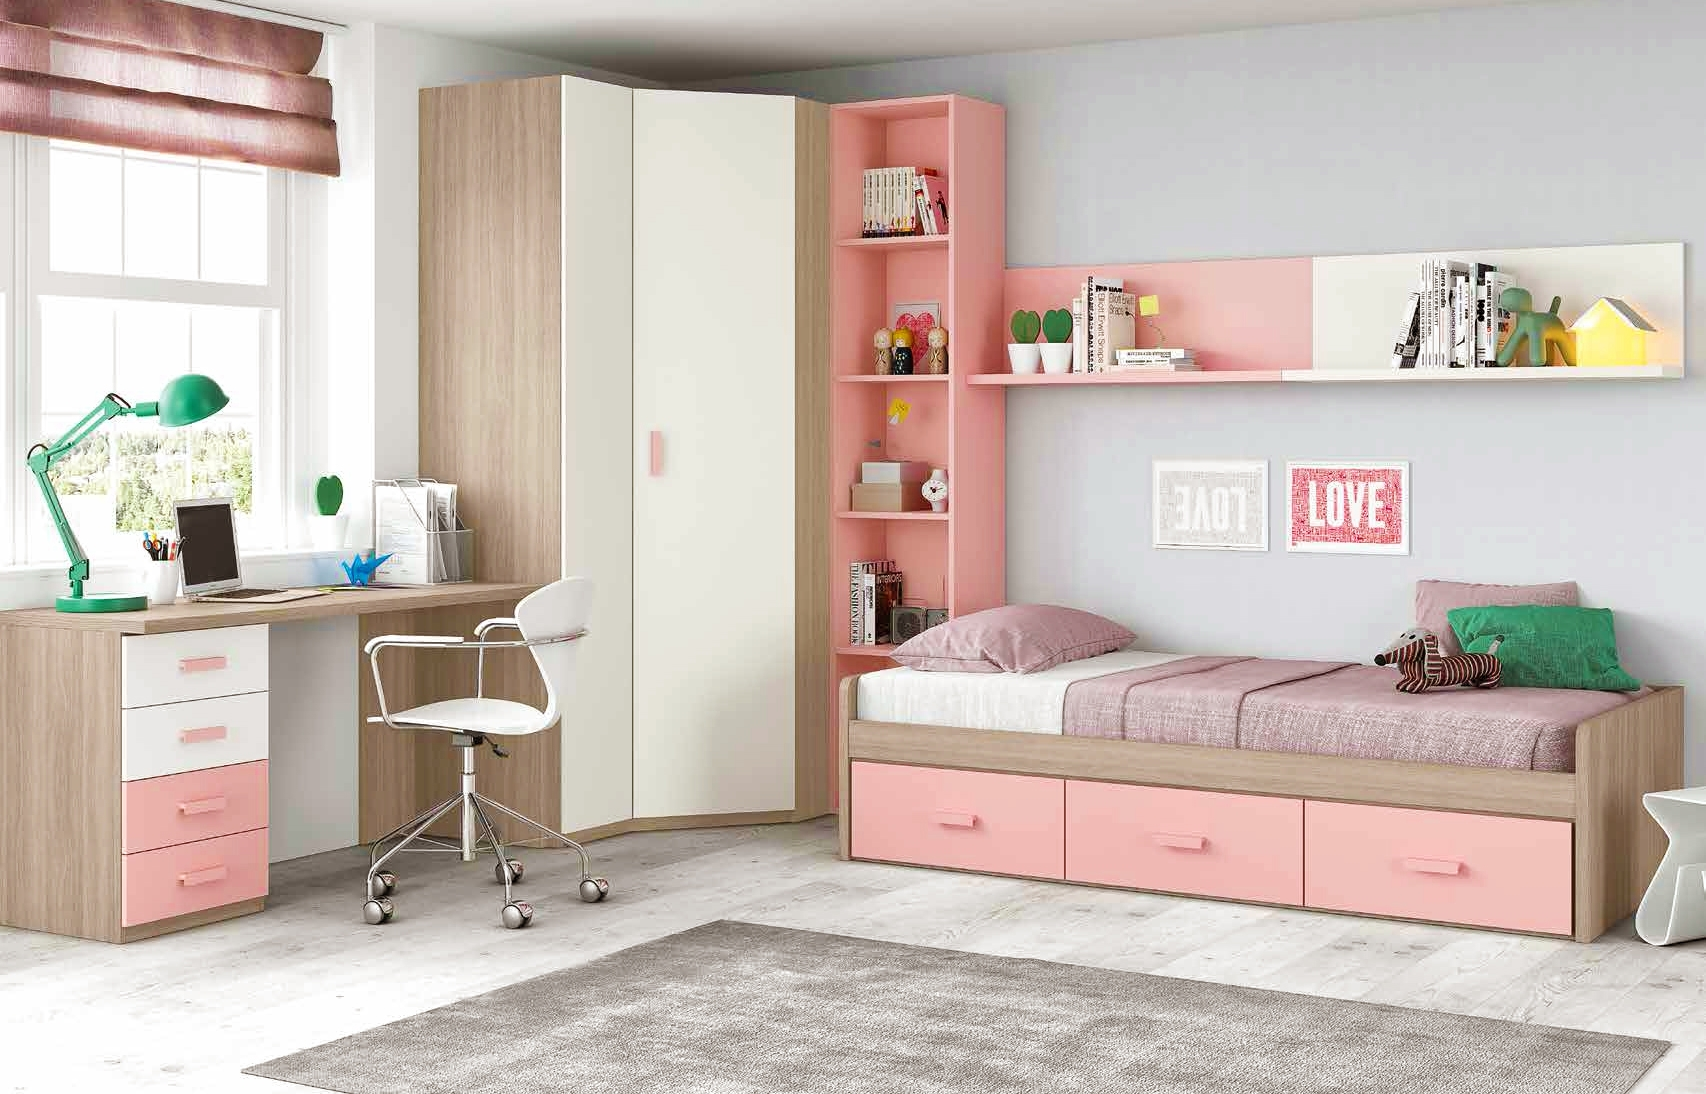 chambre ado fille douce et rose avec lit 3 coffres glicerio so nuit. Black Bedroom Furniture Sets. Home Design Ideas